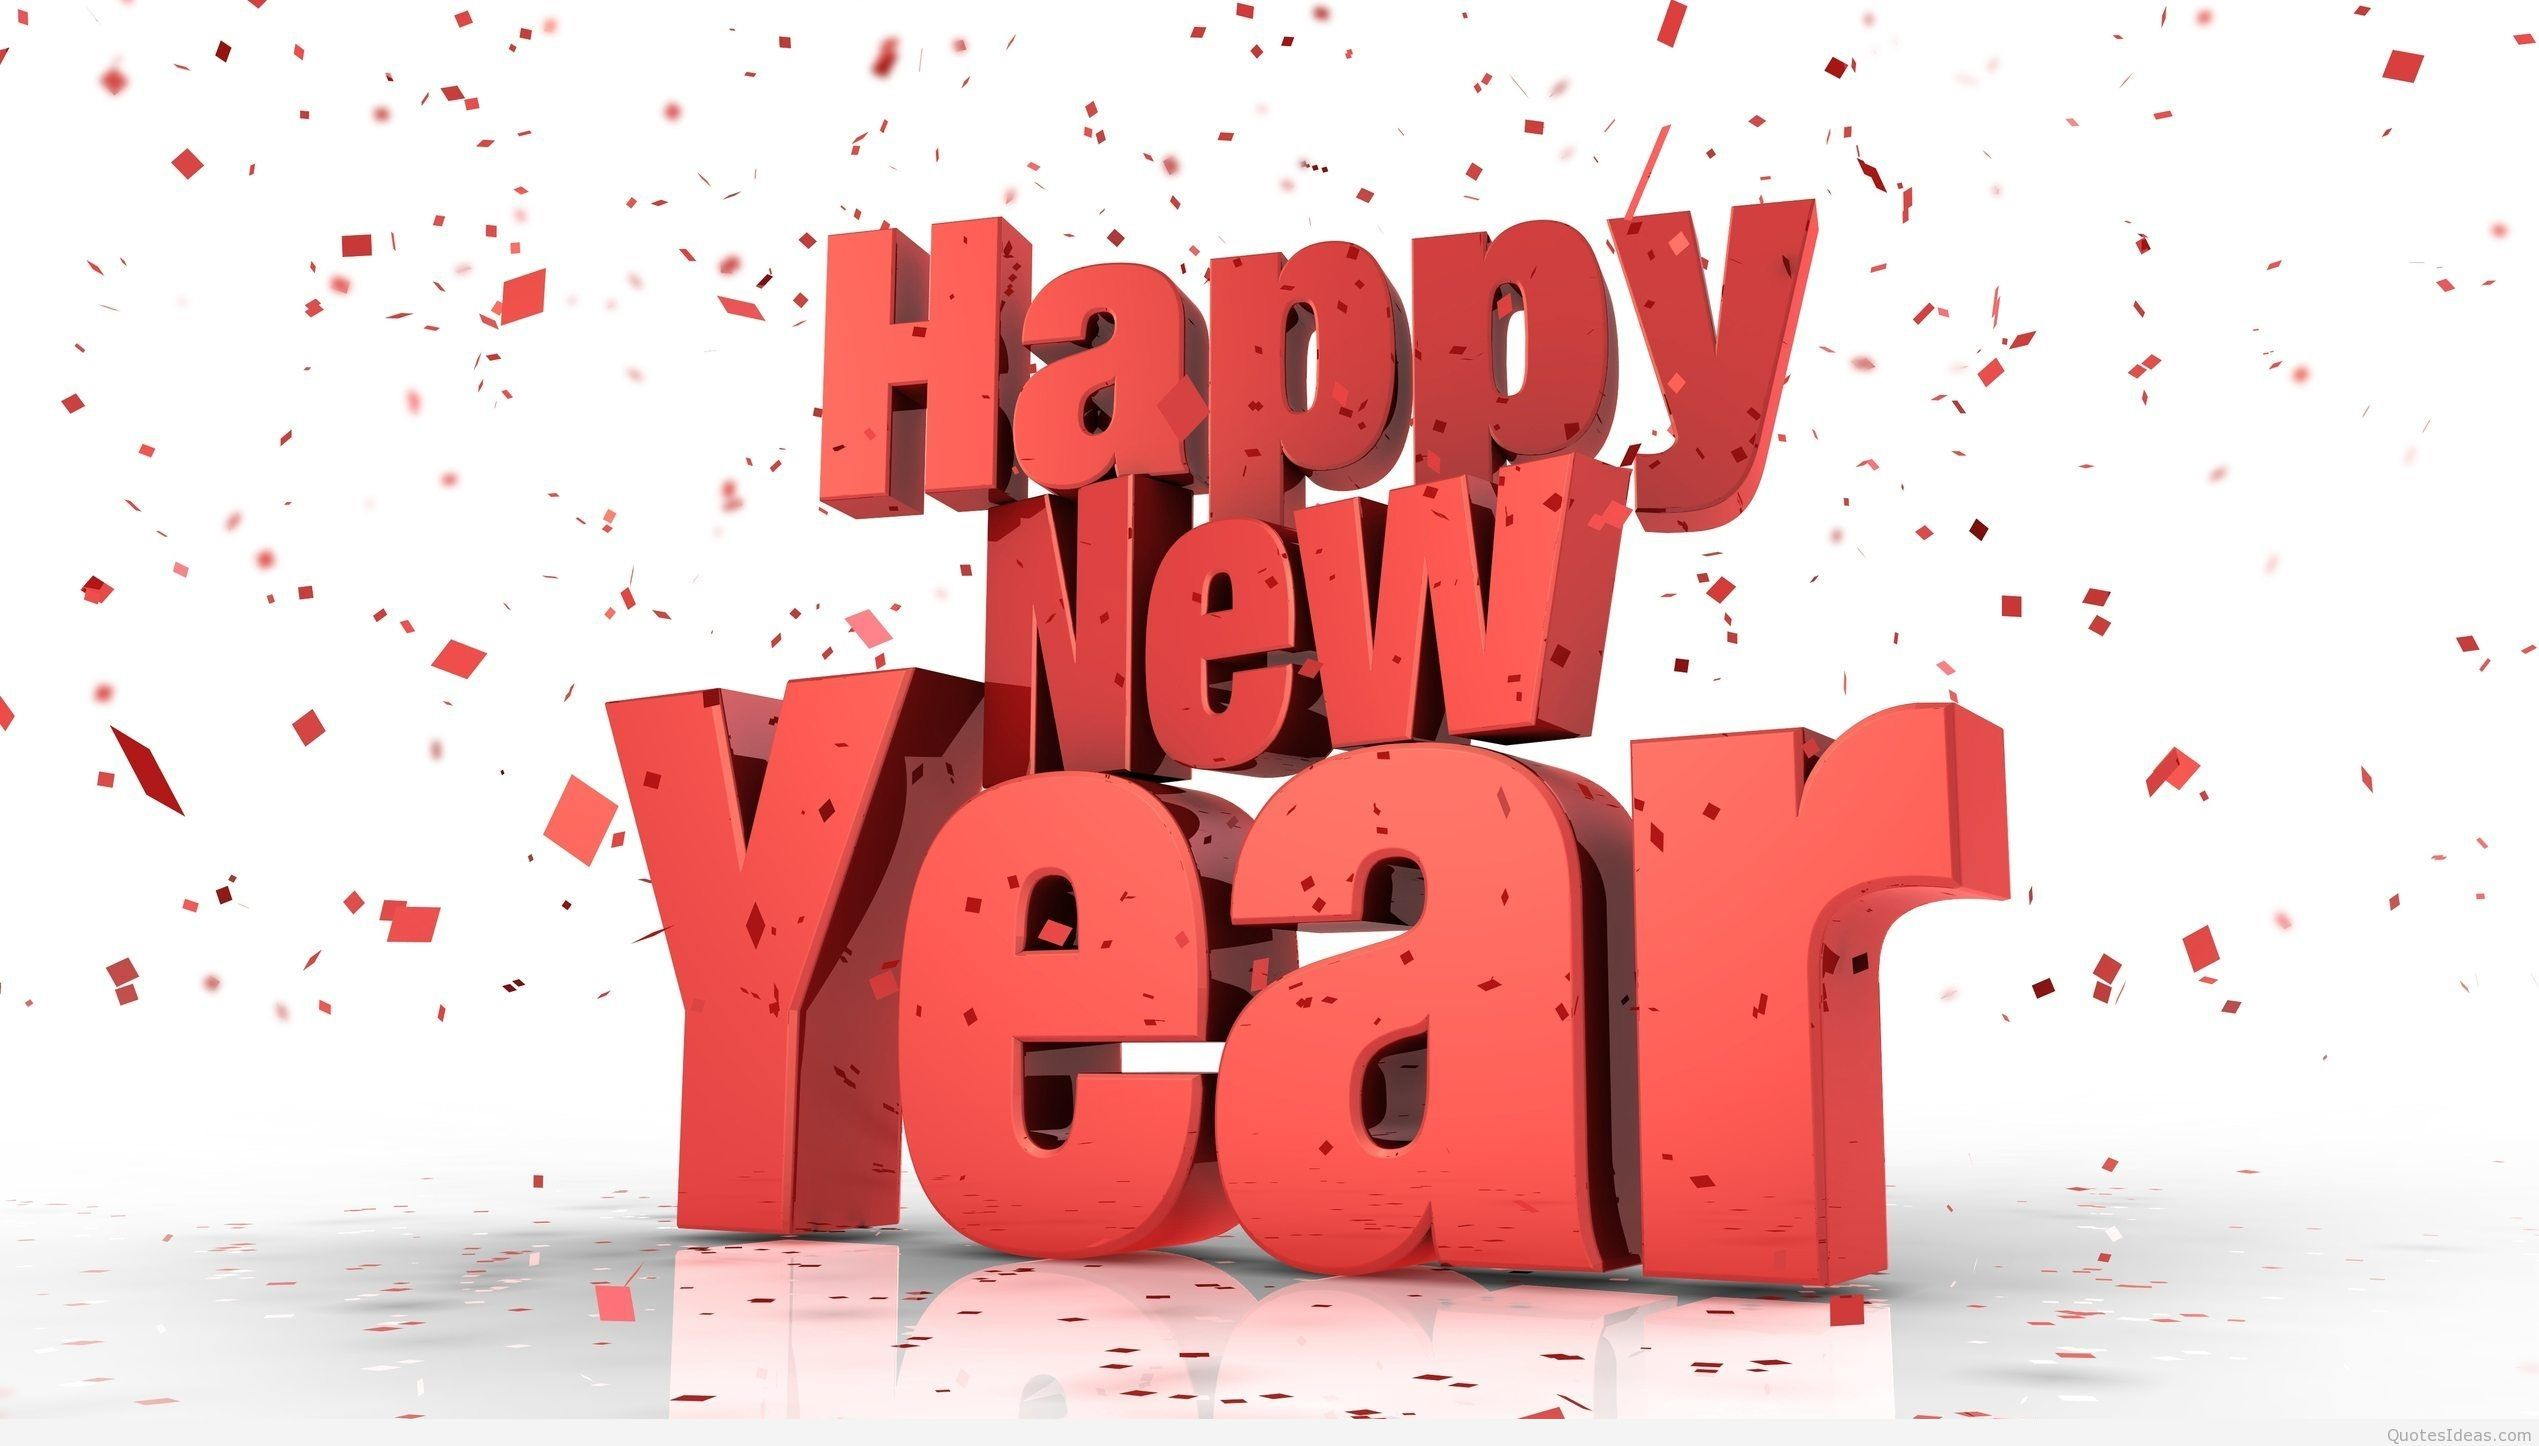 Wallpaper download new year 2016 - Happy New Year 2016 Hd Images Wallpapers Free Download